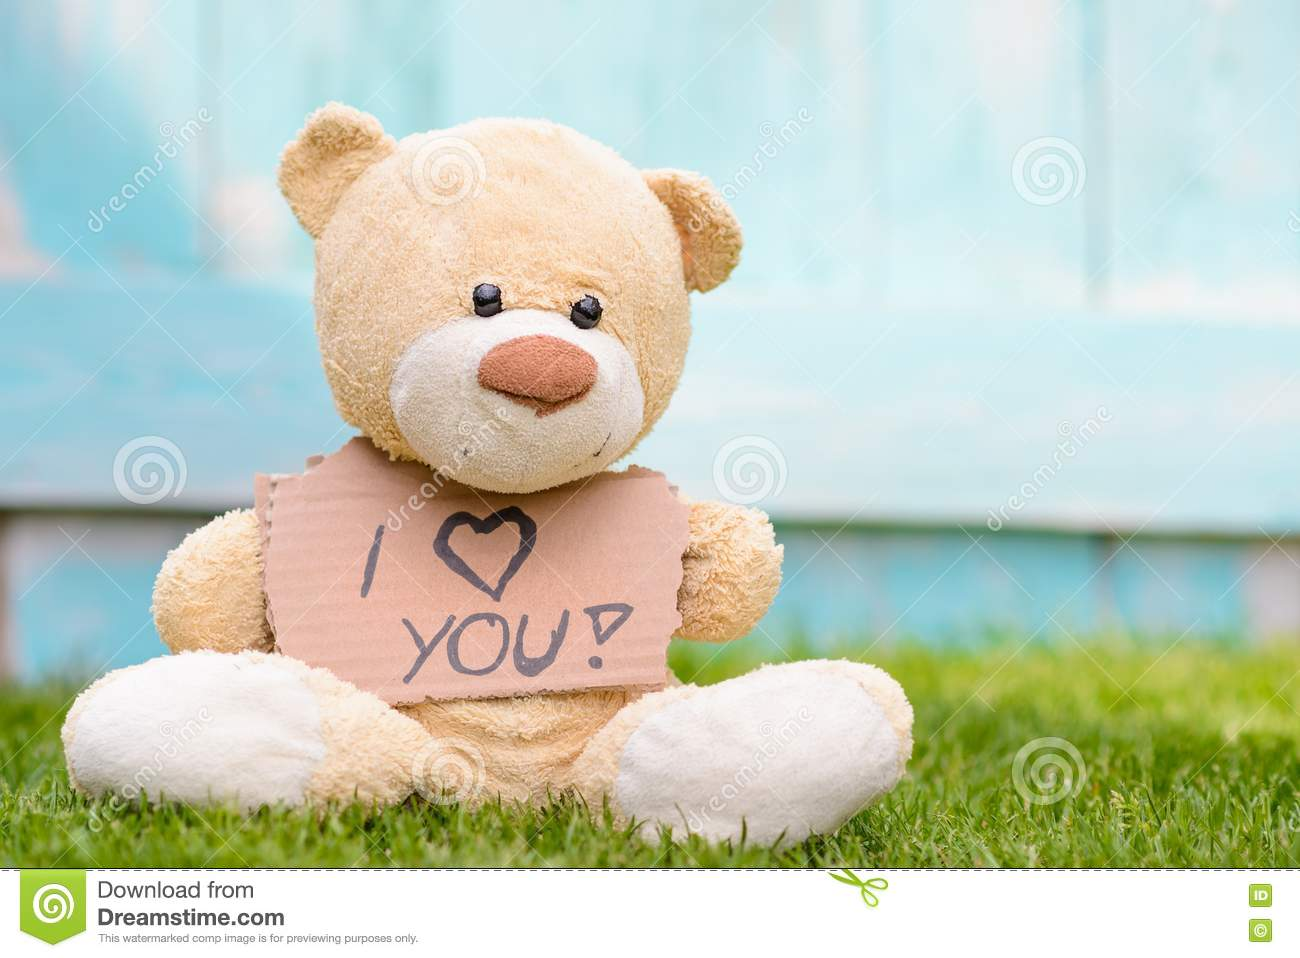 Teddy bear holding cardboard with information I love you